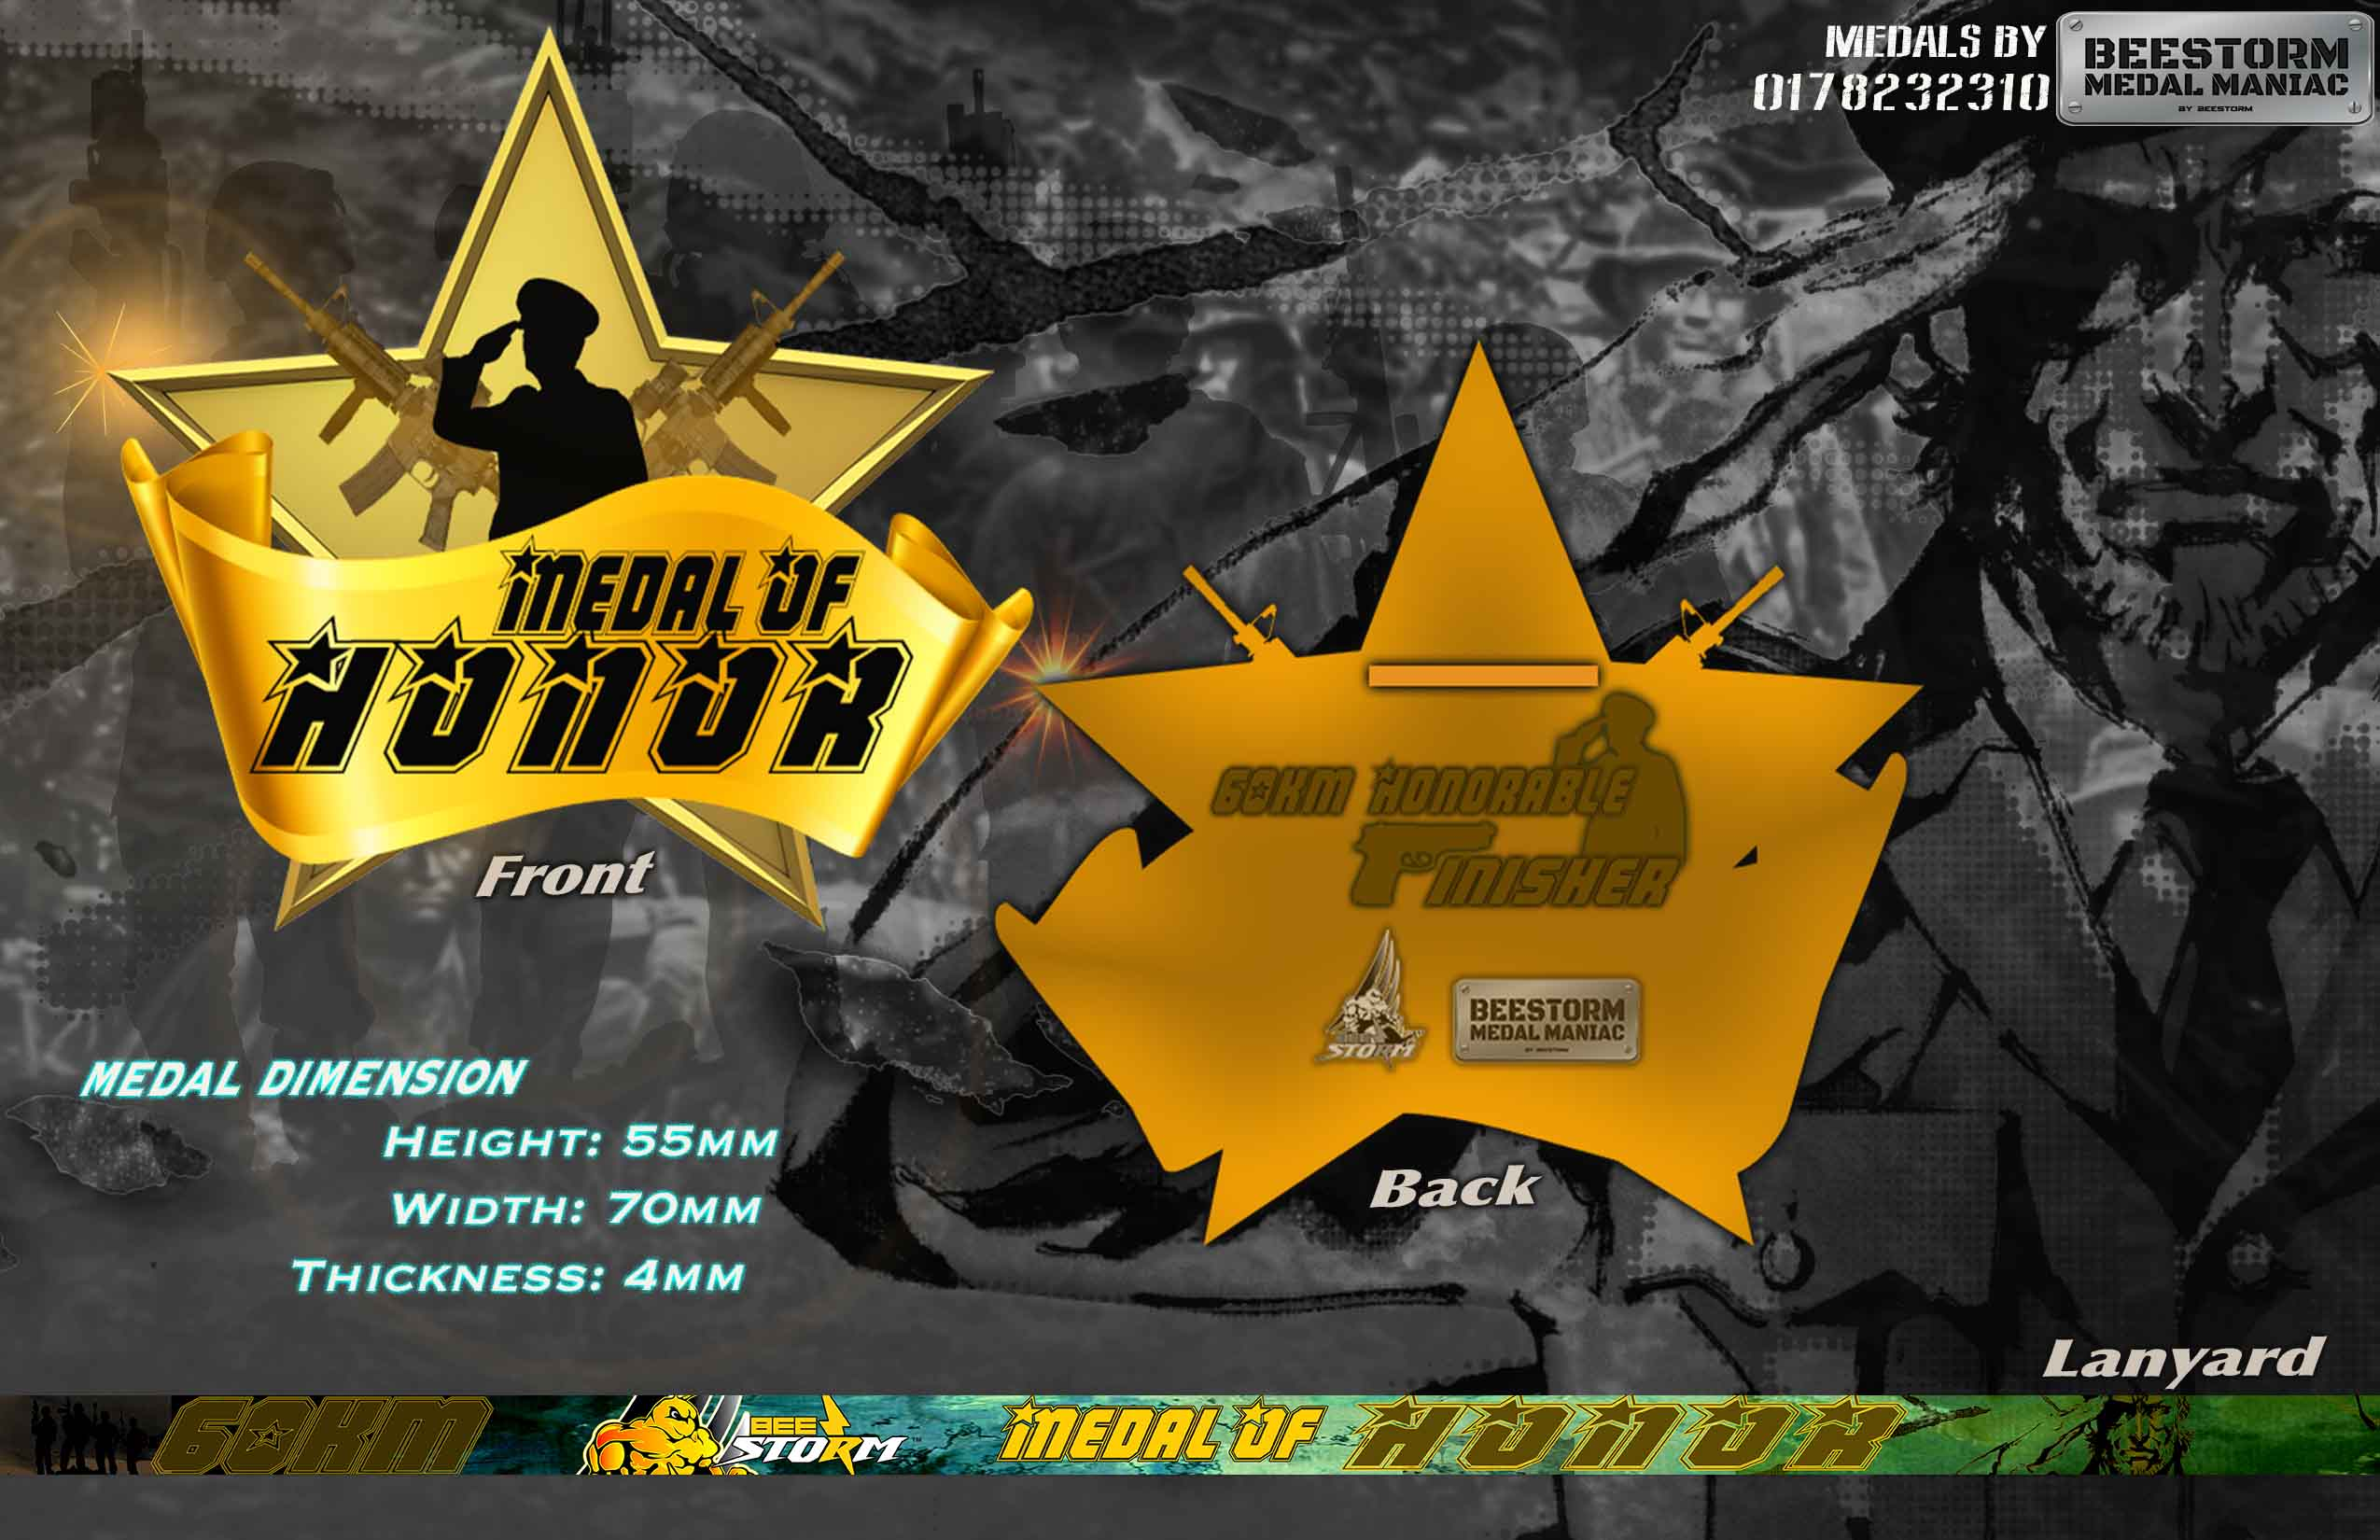 60KM MEDAL OF HONOR (VR)